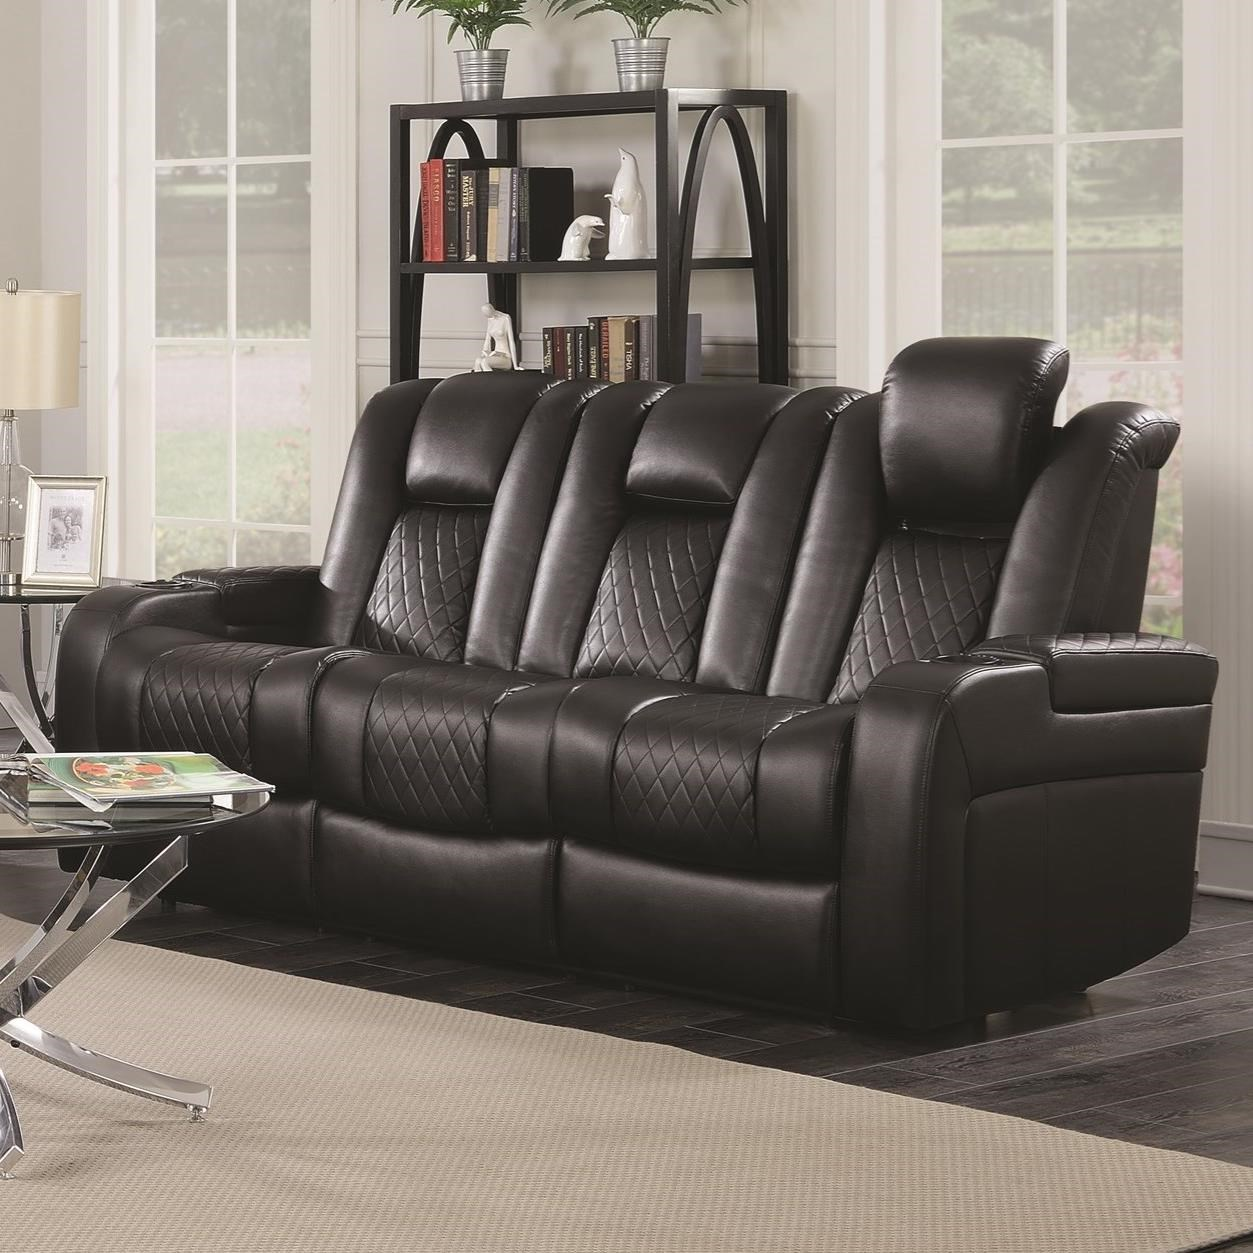 Delangelo Theater Power Leather Reclining Sofa with Cup Holders, Storage  Console and USB Port